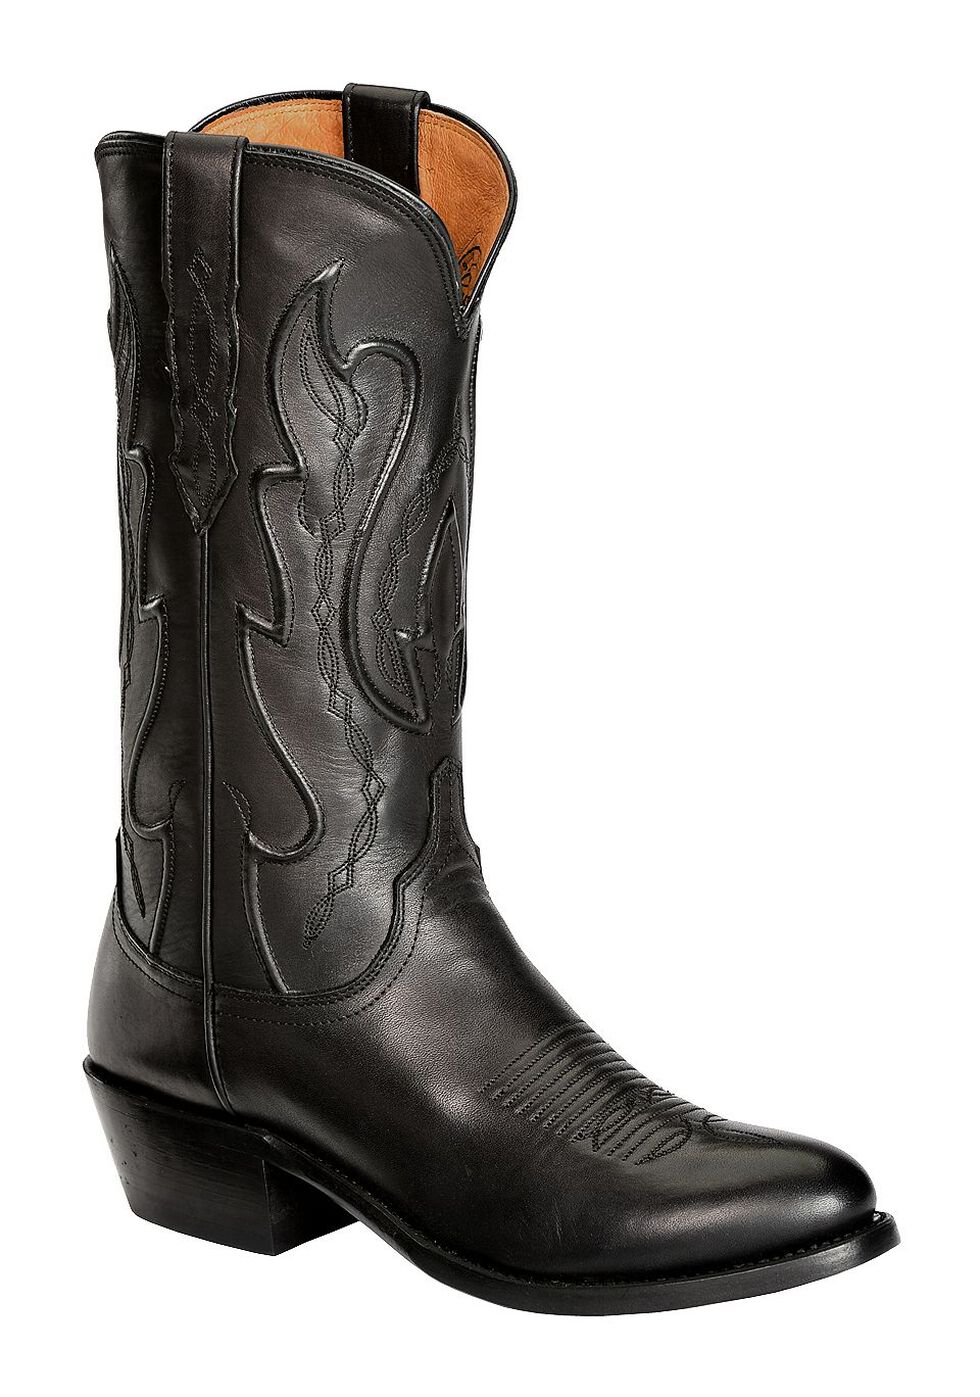 Lucchese Handmade 1883 Cole Ranch Hand Cowboy Boots - Medium Toe, Black, hi-res